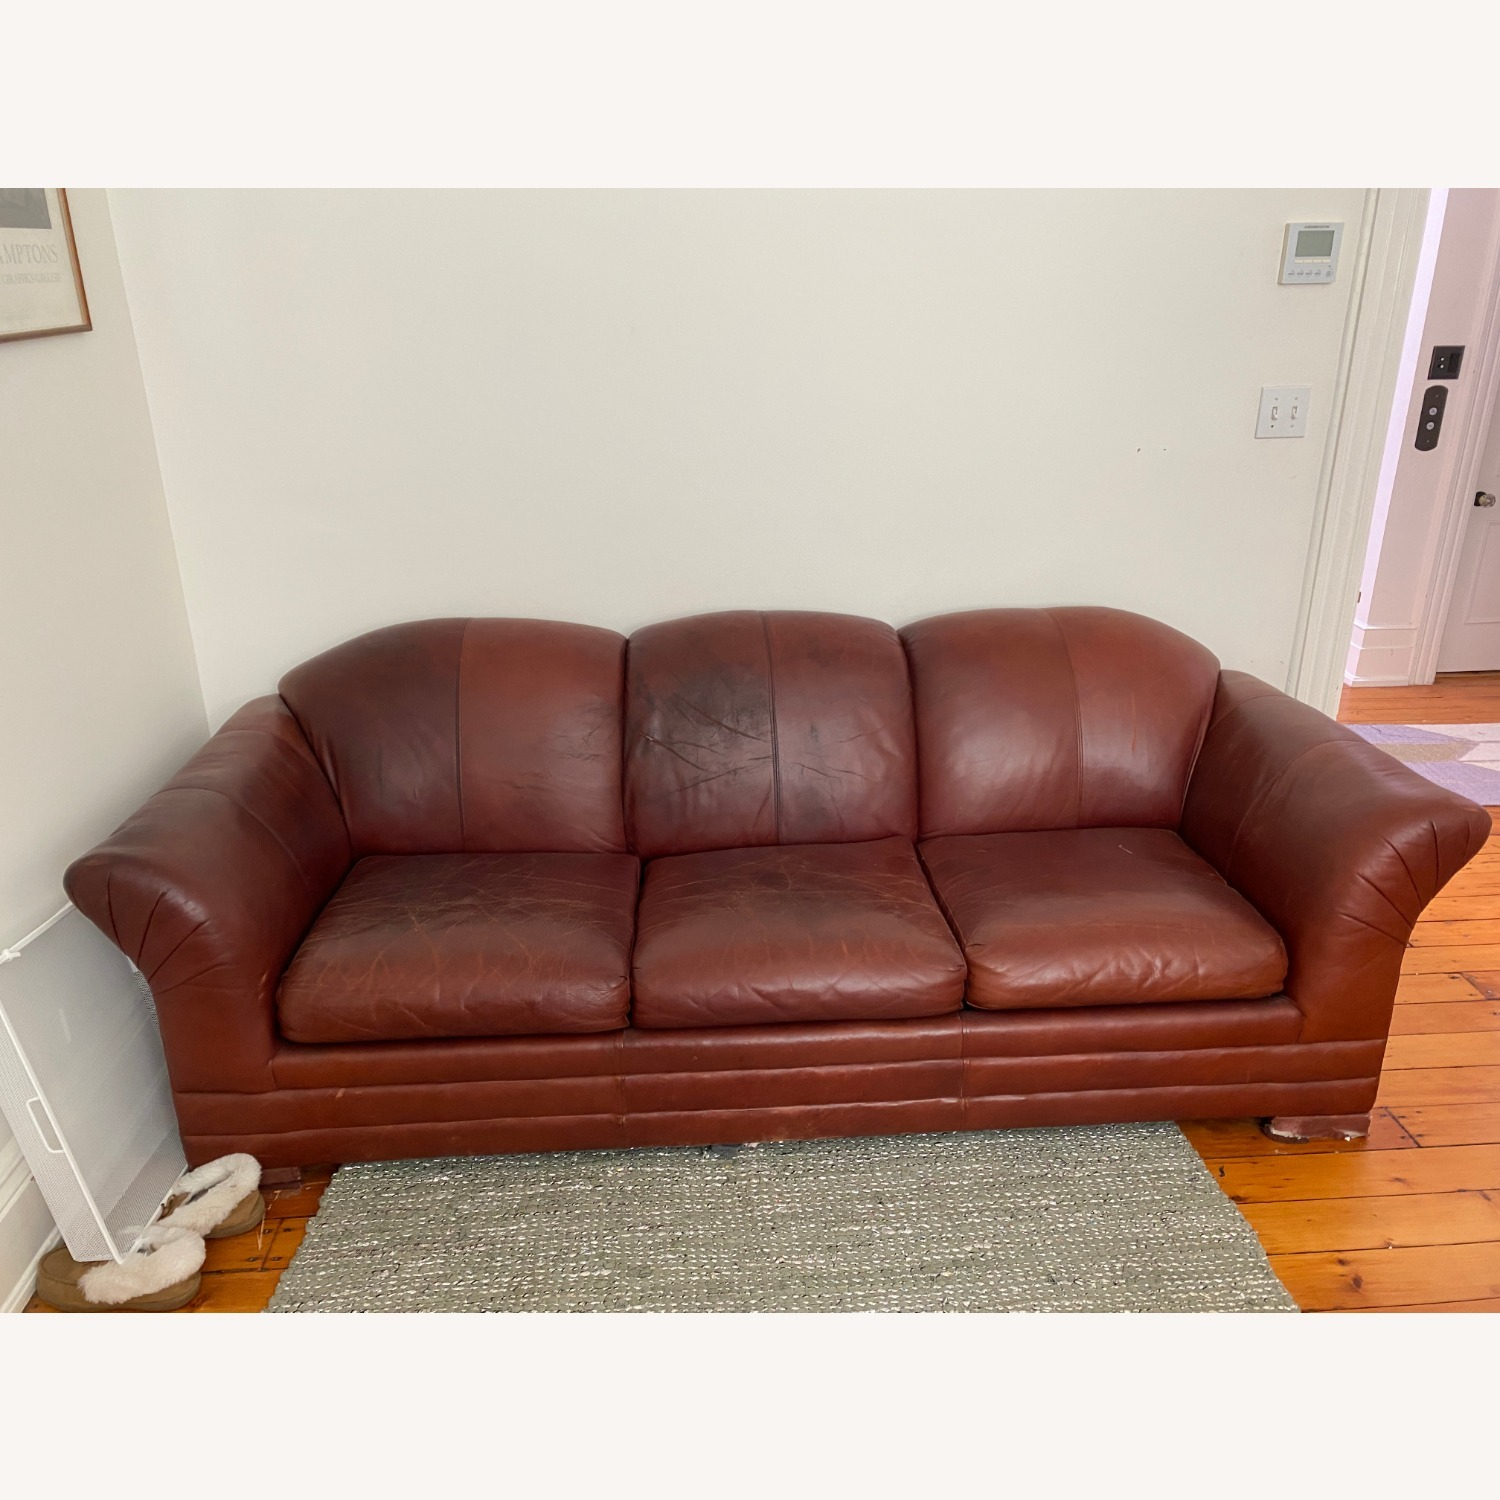 Leather 3 Seat Sleeper Sofa - image-1